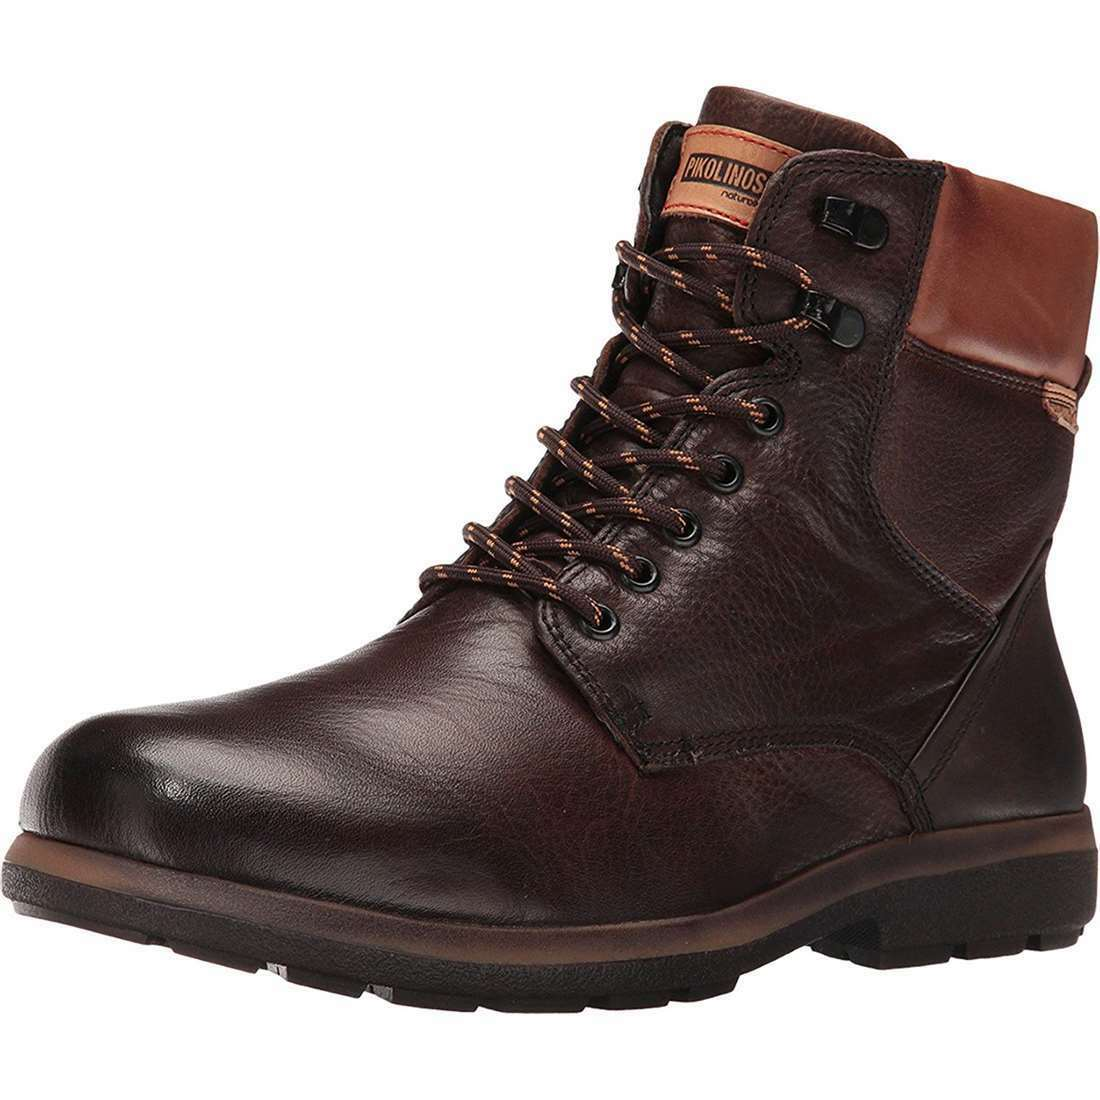 Pikolinos Badajoz Premium Leather Lace Up Men's Winter Ankle Boots NEW